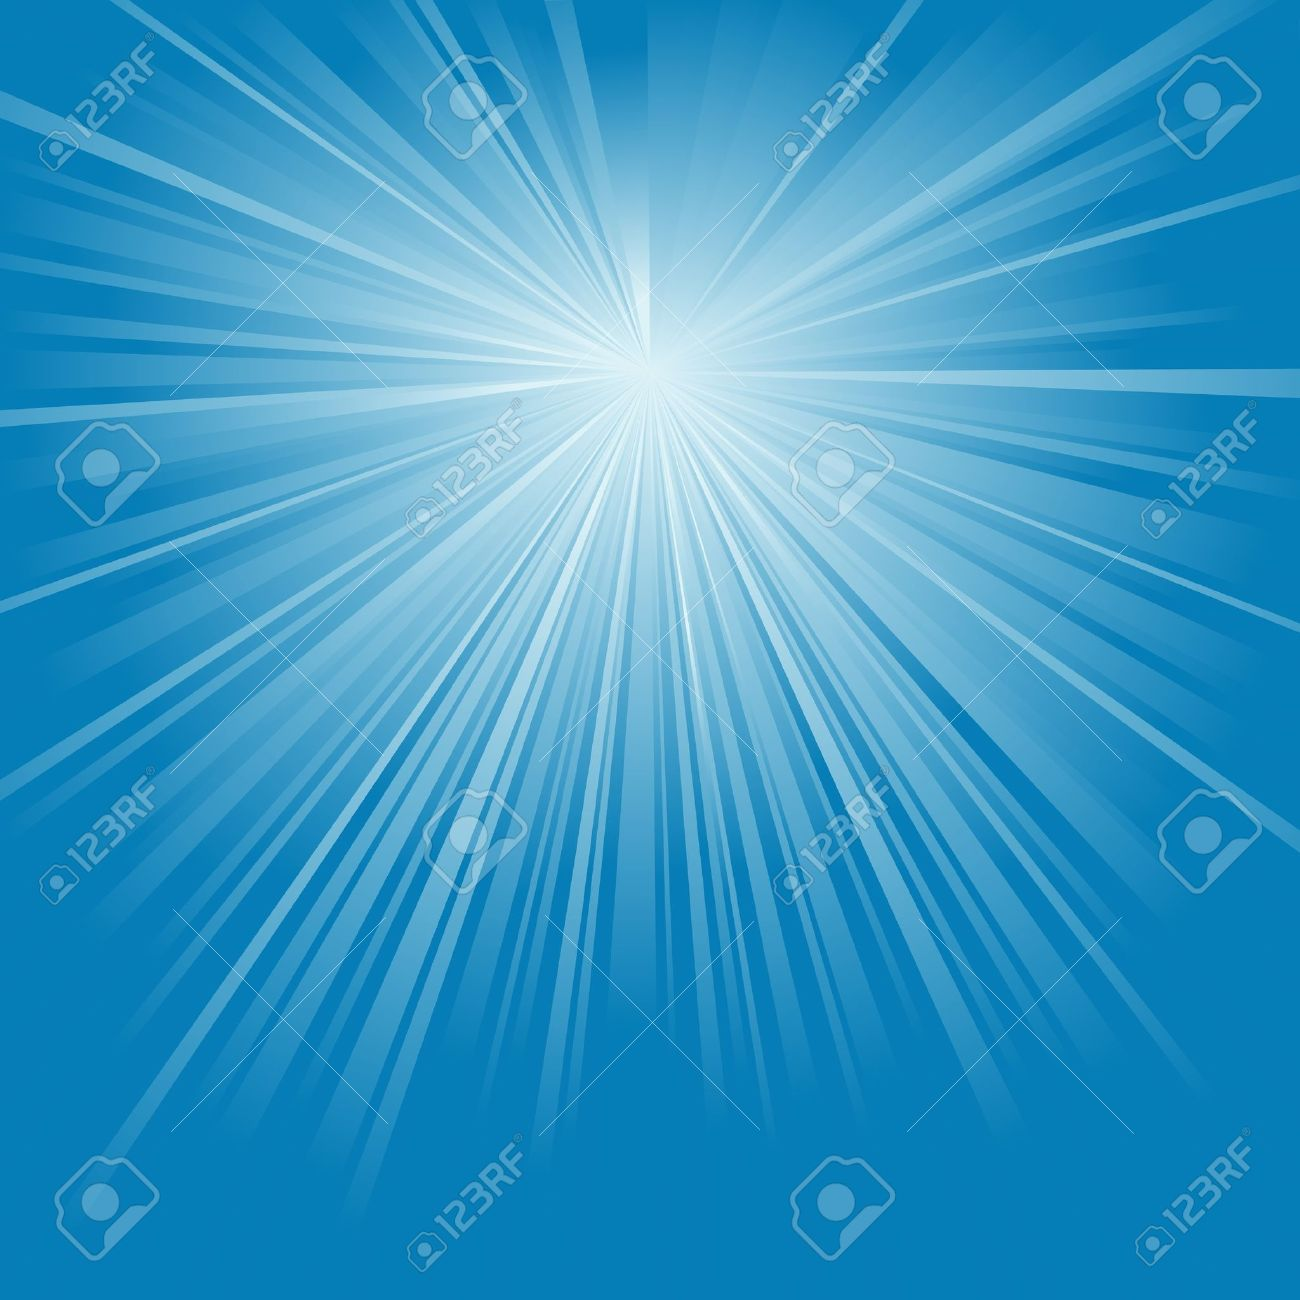 Rays of light clipart - Clipground